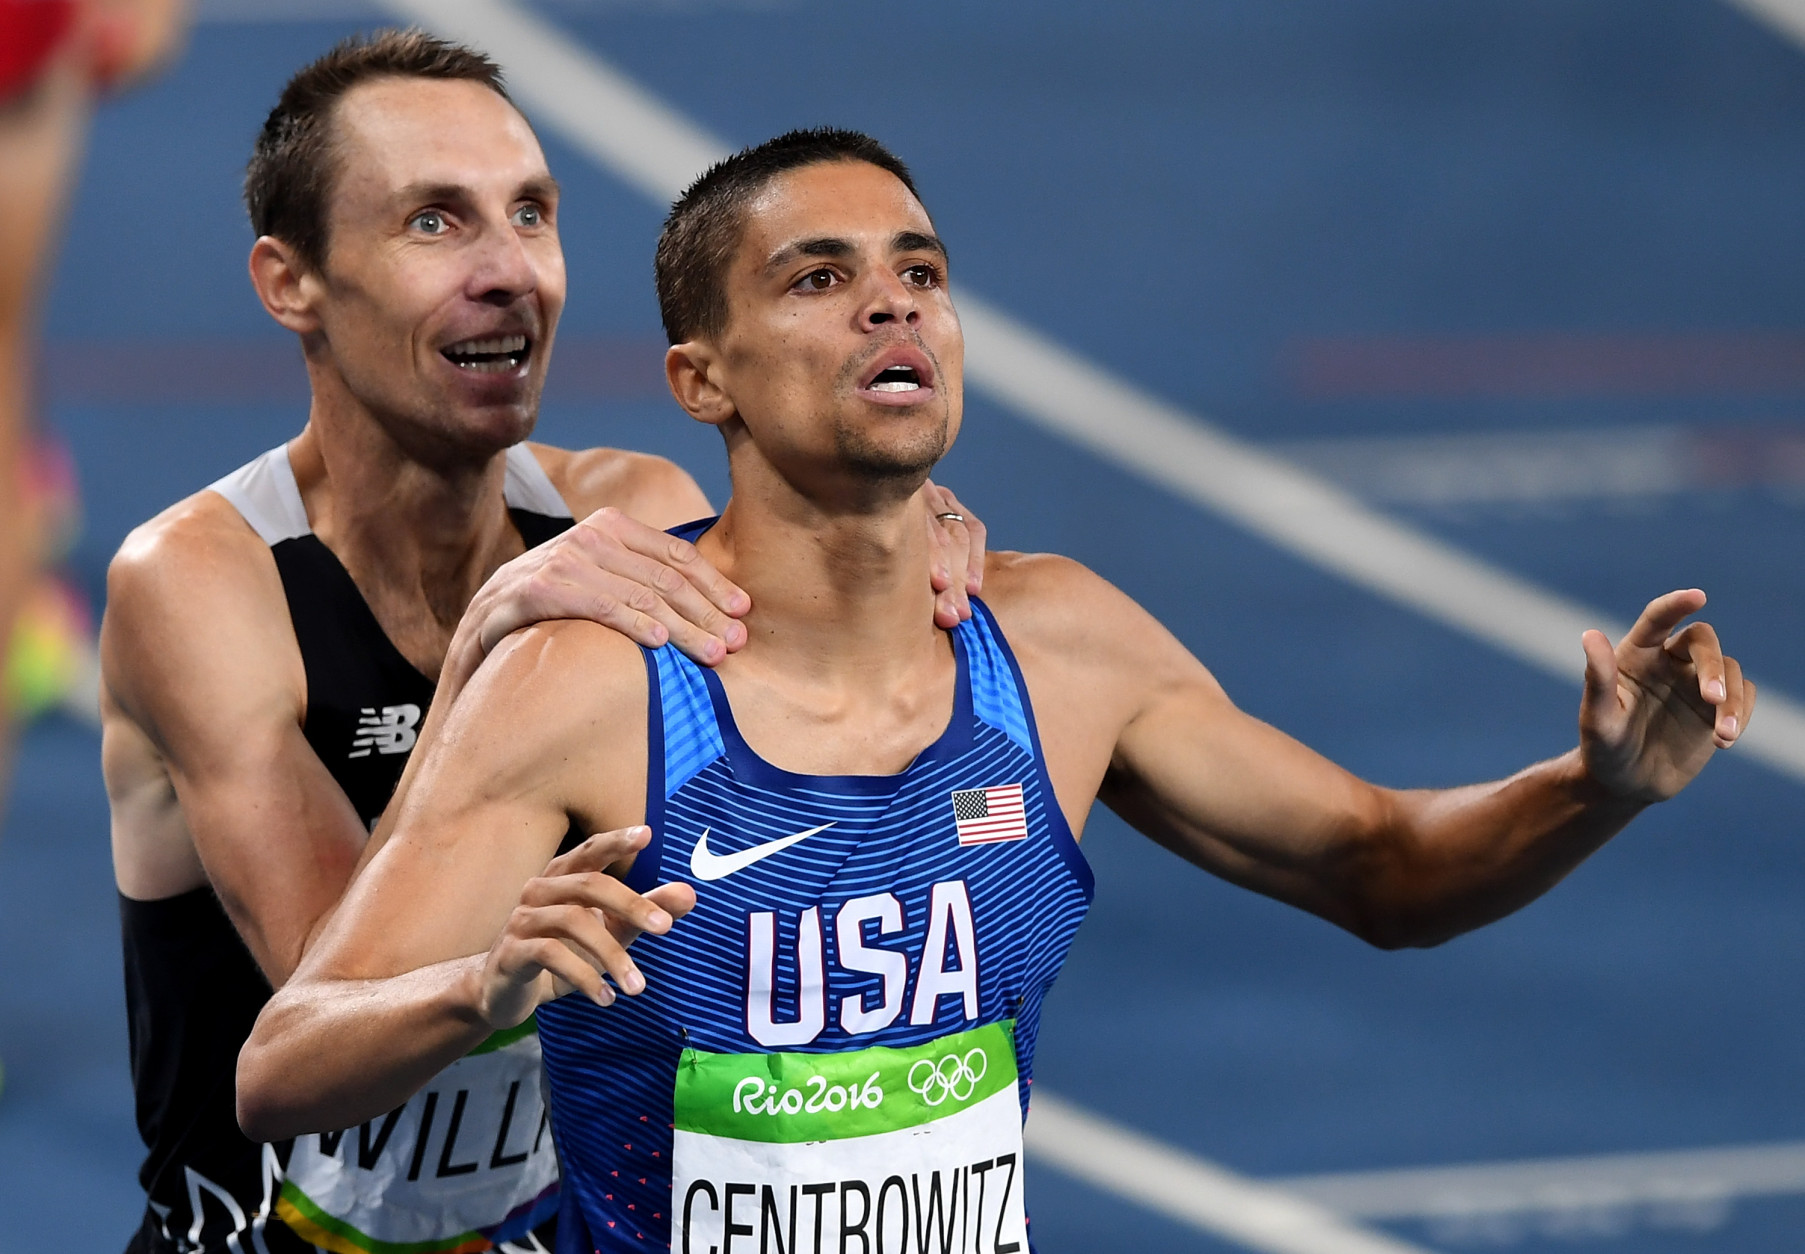 RIO DE JANEIRO, BRAZIL - AUGUST 20:  Matthew Centrowitz of the United States reacts with Nicholas Willis of New Zealand after winning gold and bronze respectively in the Men's 1500 meter Final on Day 15 of the Rio 2016 Olympic Games at the Olympic Stadium on August 20, 2016 in Rio de Janeiro, Brazil.  (Photo by Shaun Botterill/Getty Images)